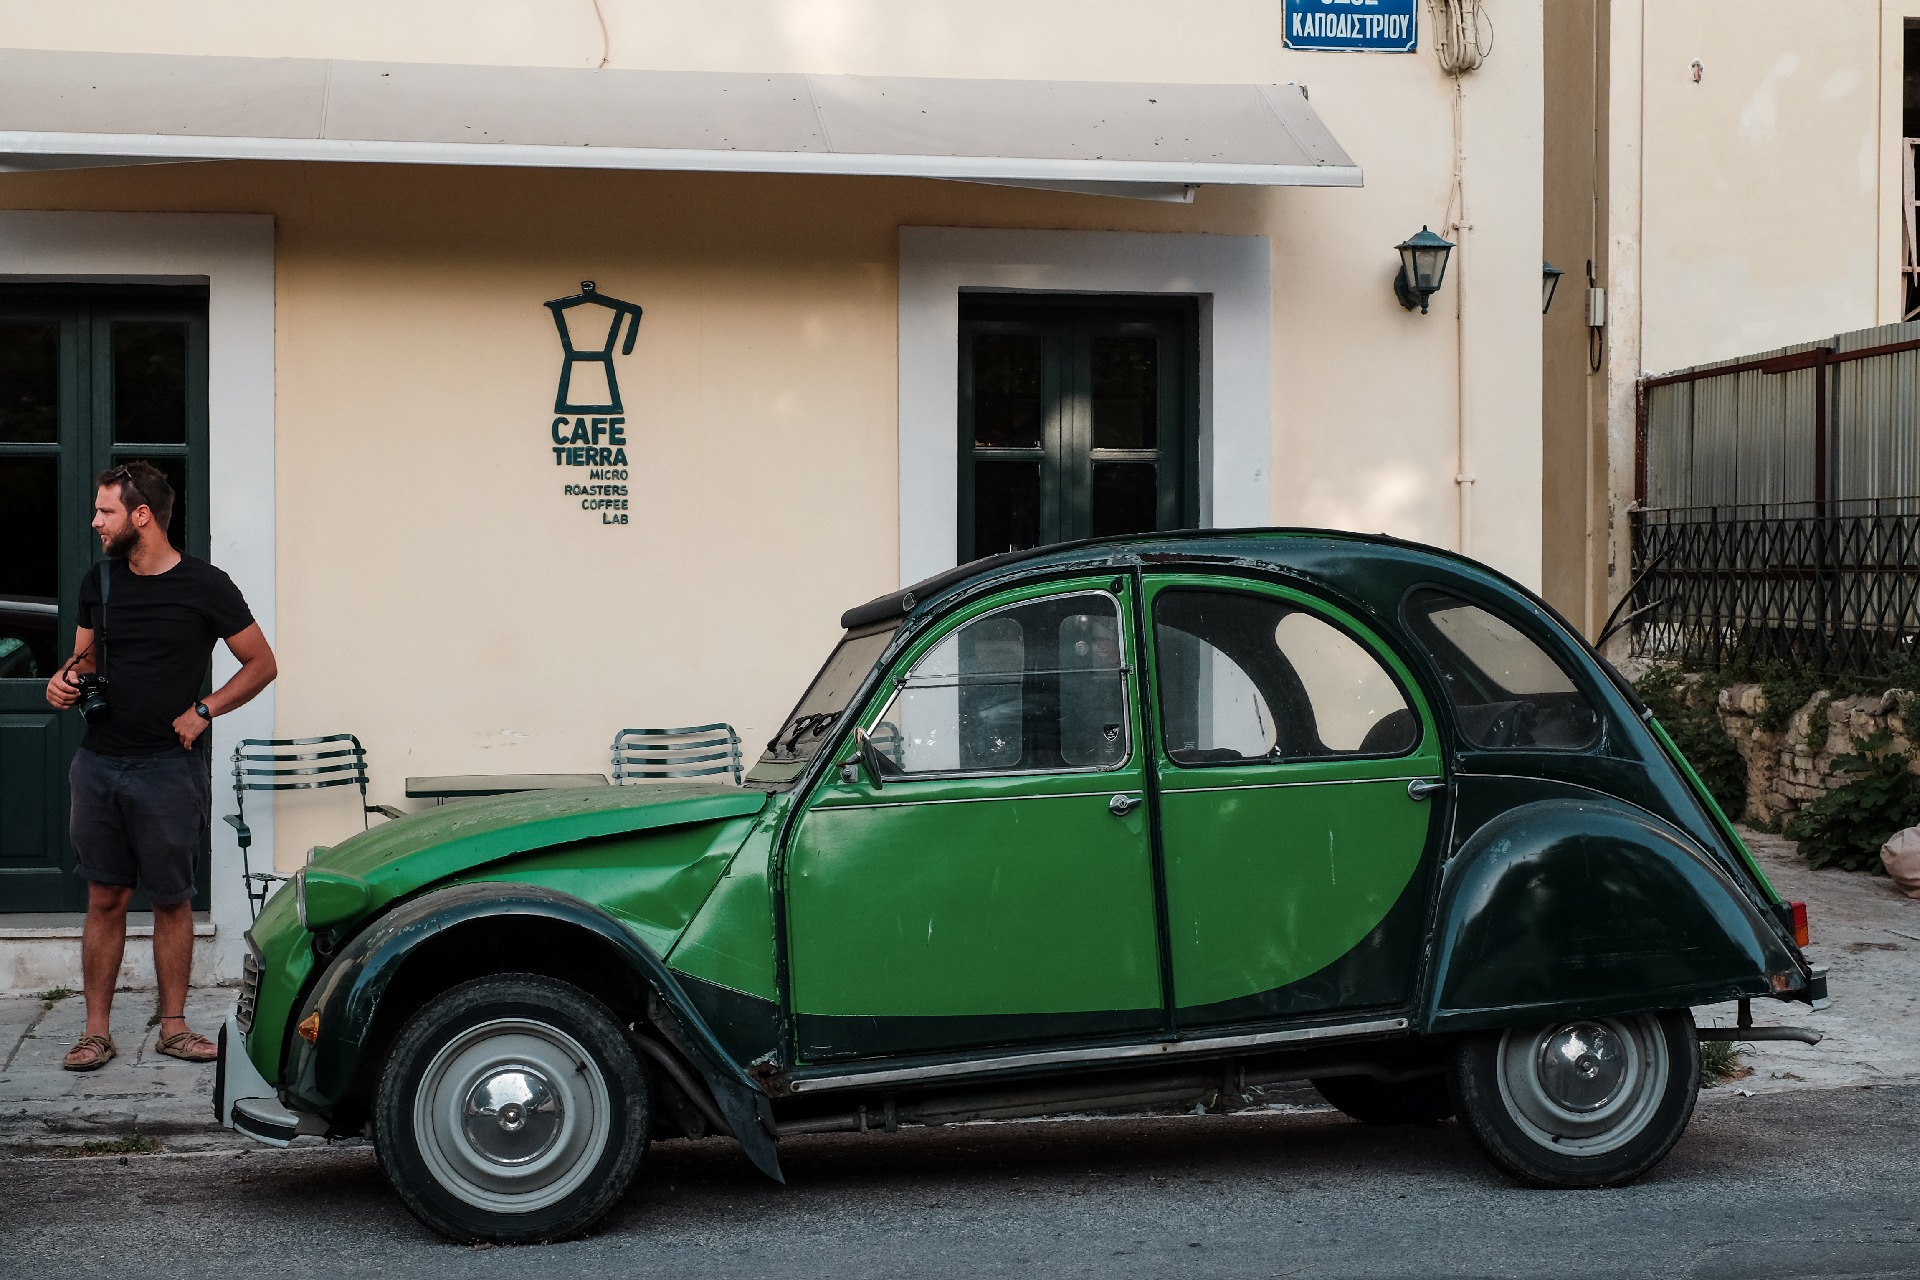 Man beside a green car outside Tierra cafe, weekend in Greece